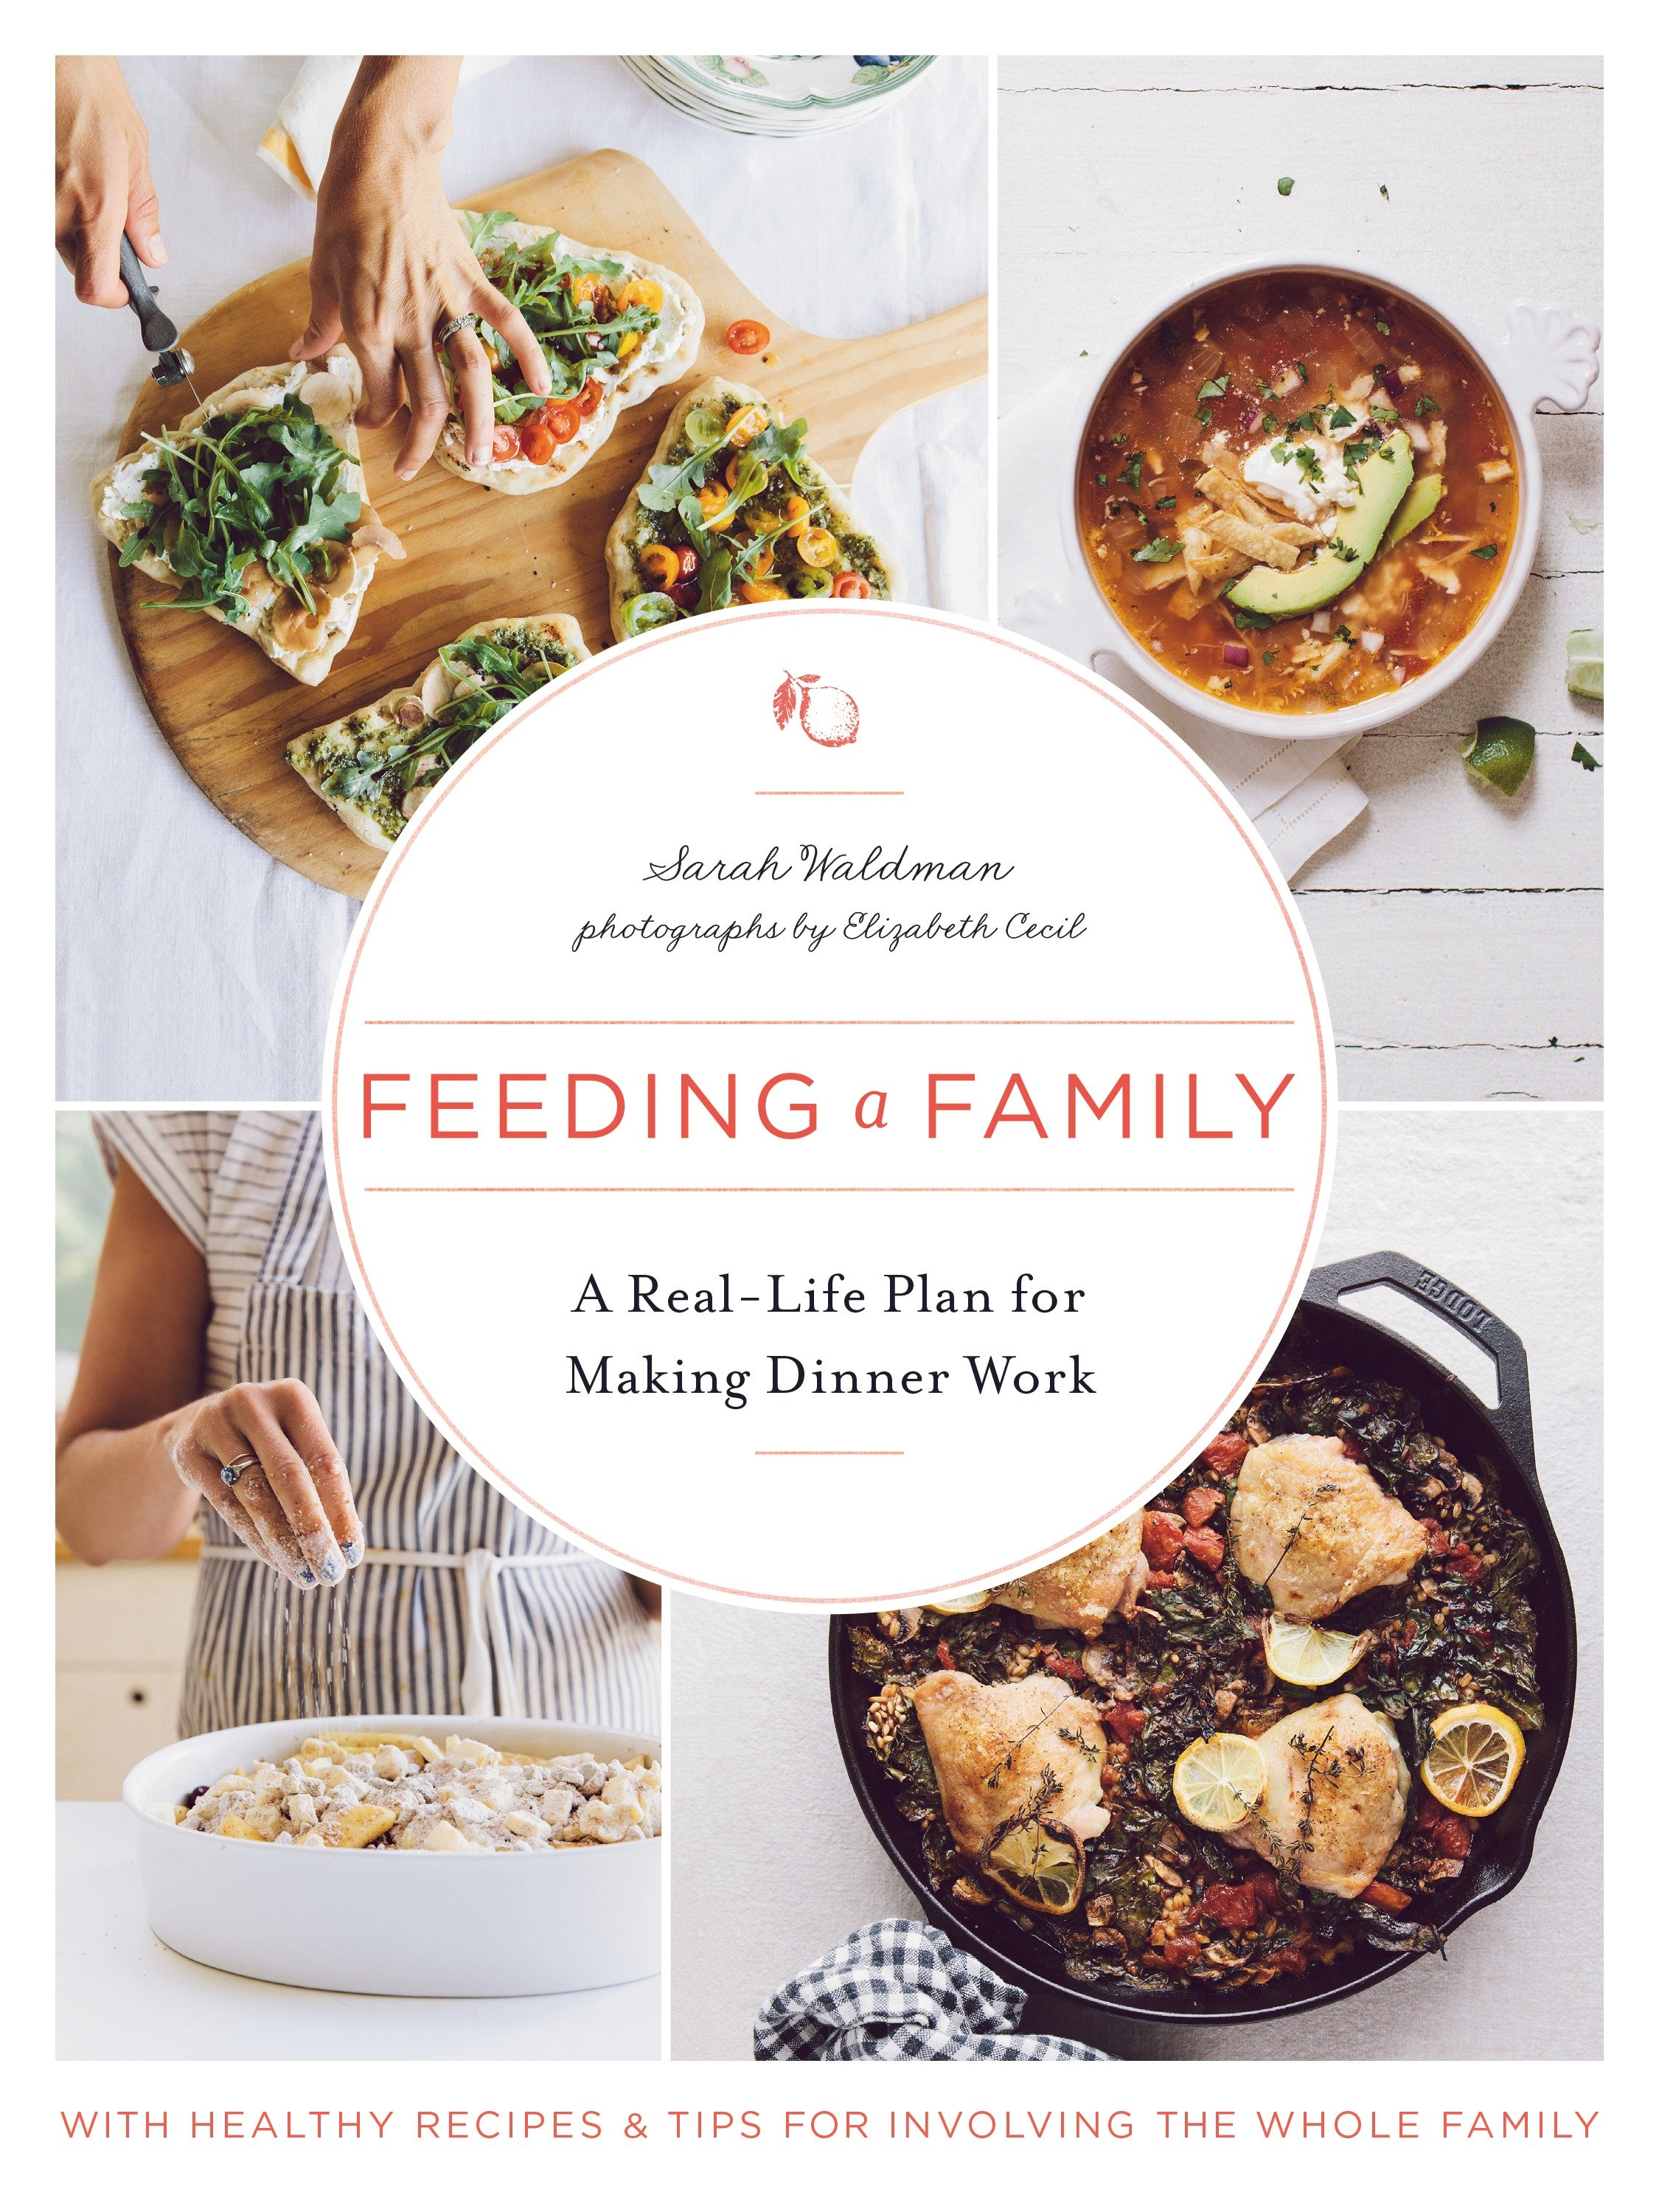 Feeding a Family A Real-Life Plan for Making Dinner Work